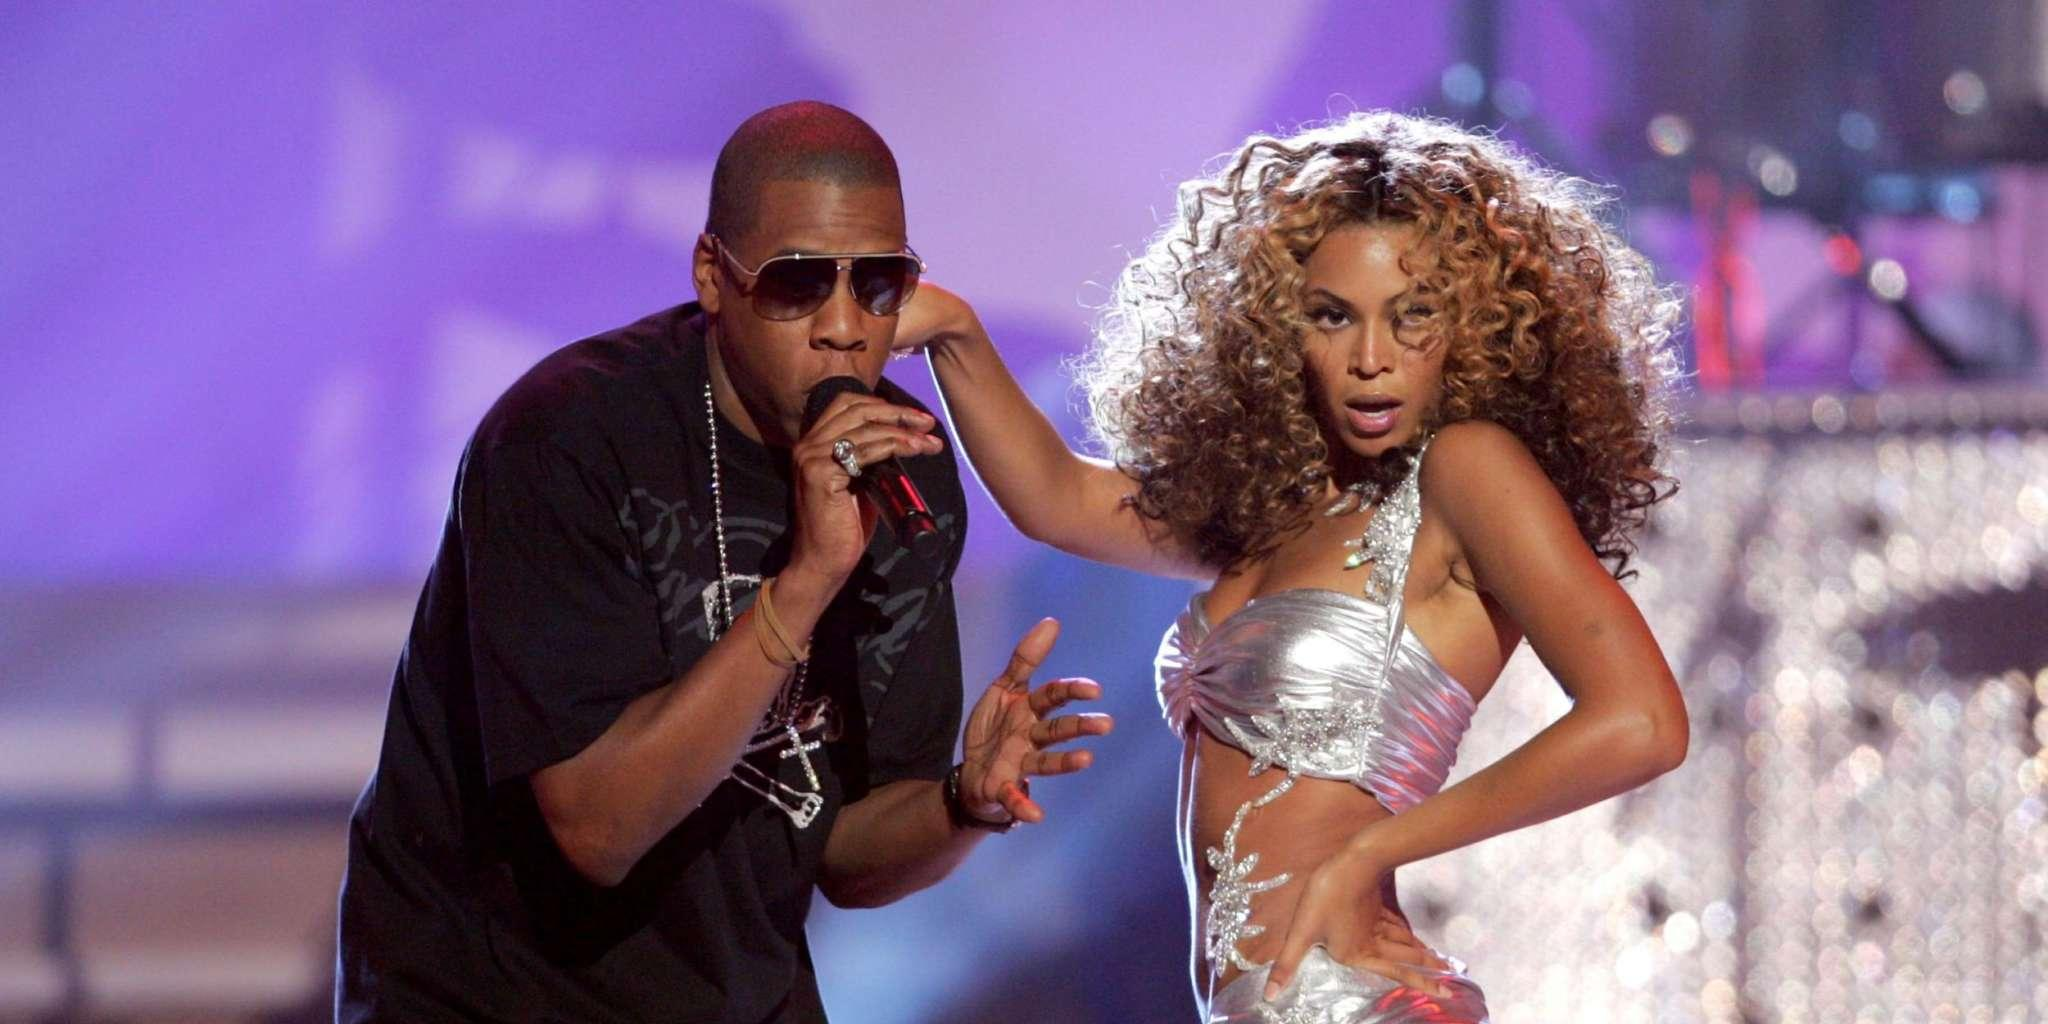 Beyonce Gets Jealous When A Woman Approaches Jay-Z And It's All Been Filmed - Check Out The Clip